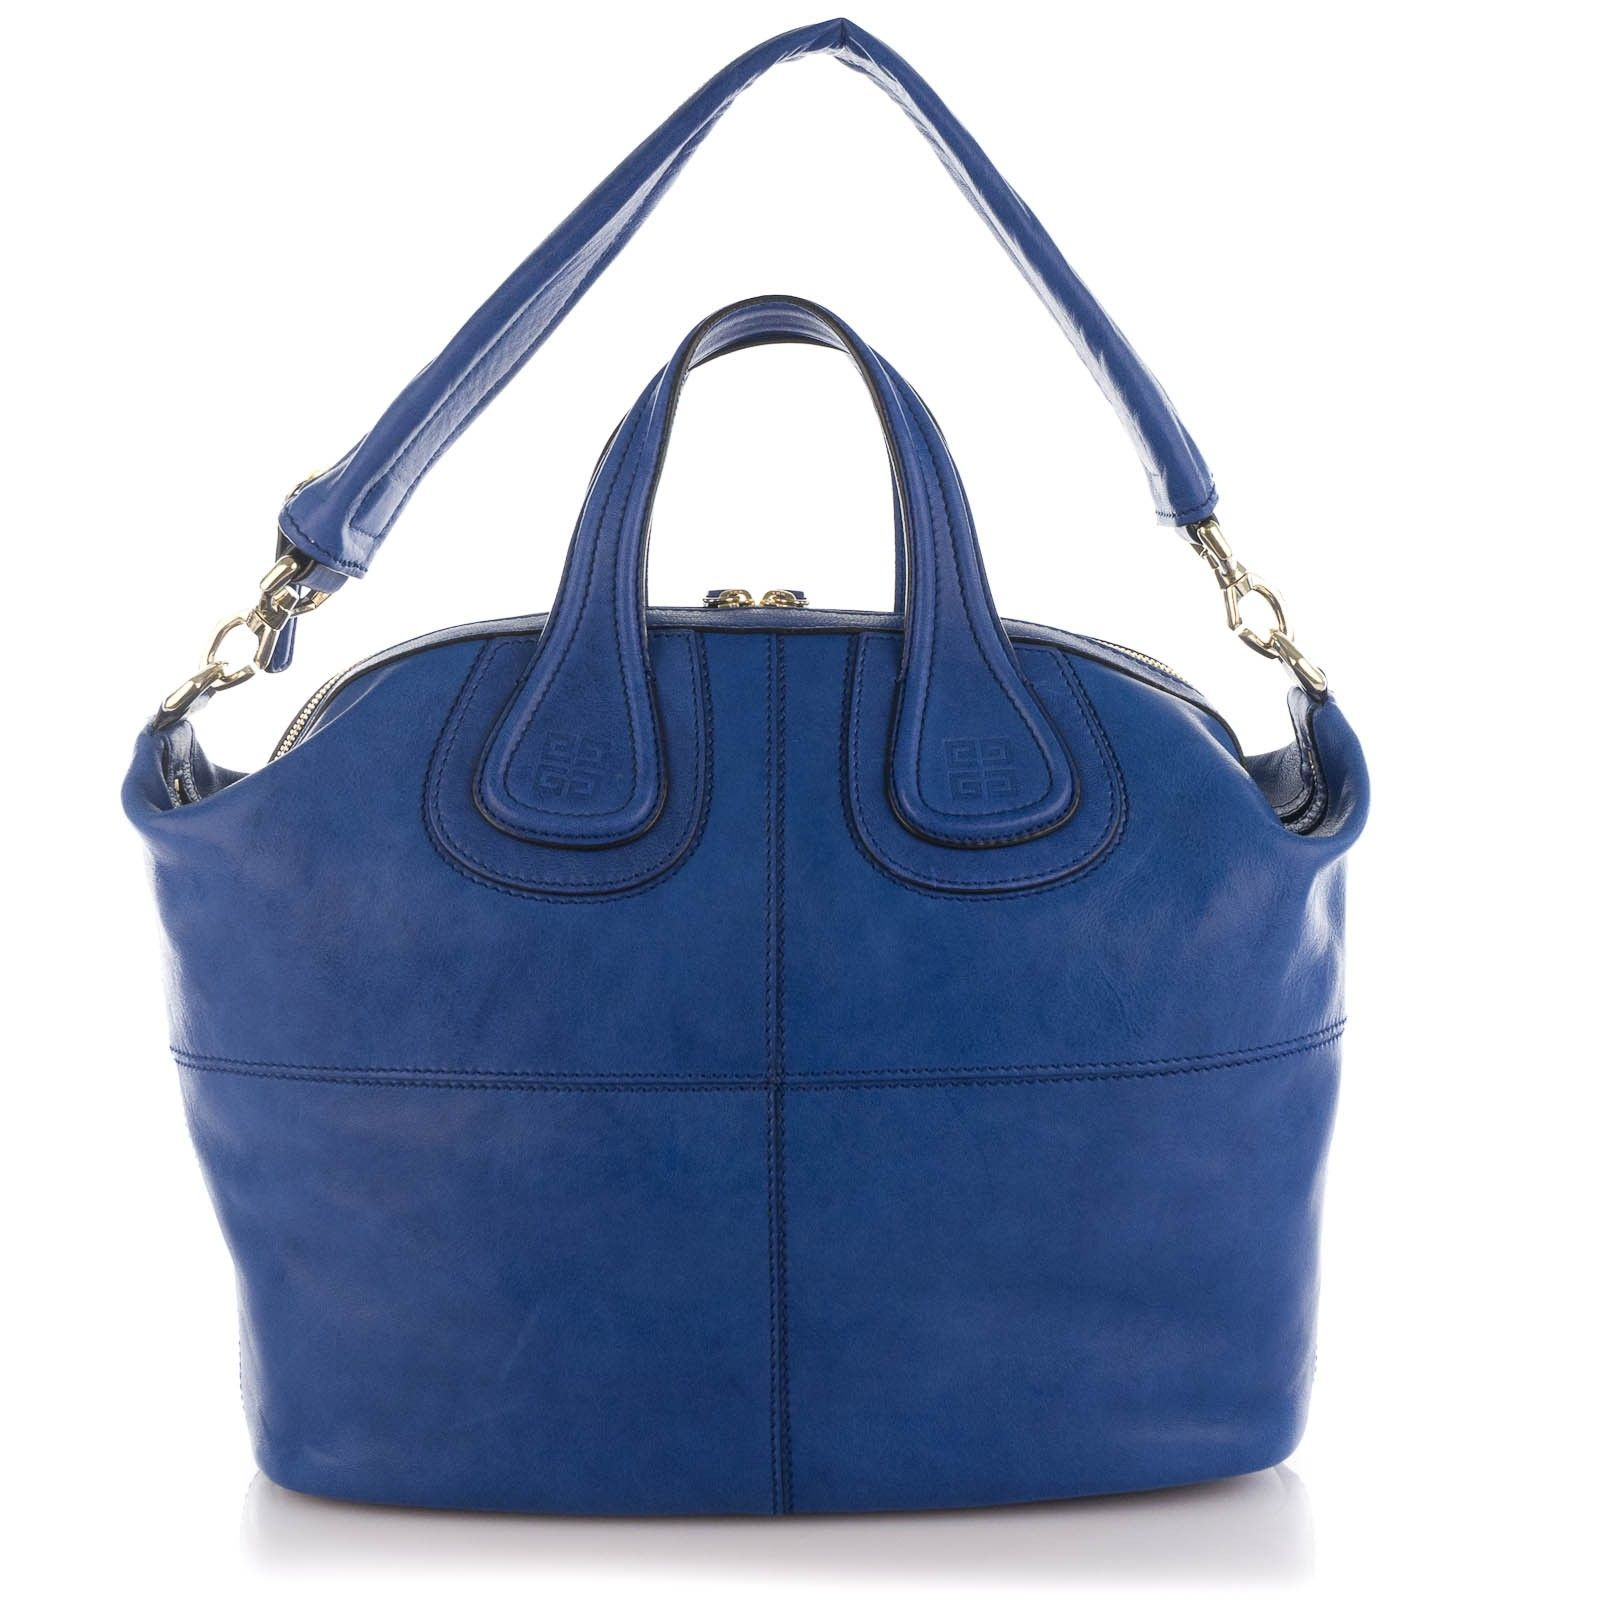 GIVENCHY - nightingale bright blue